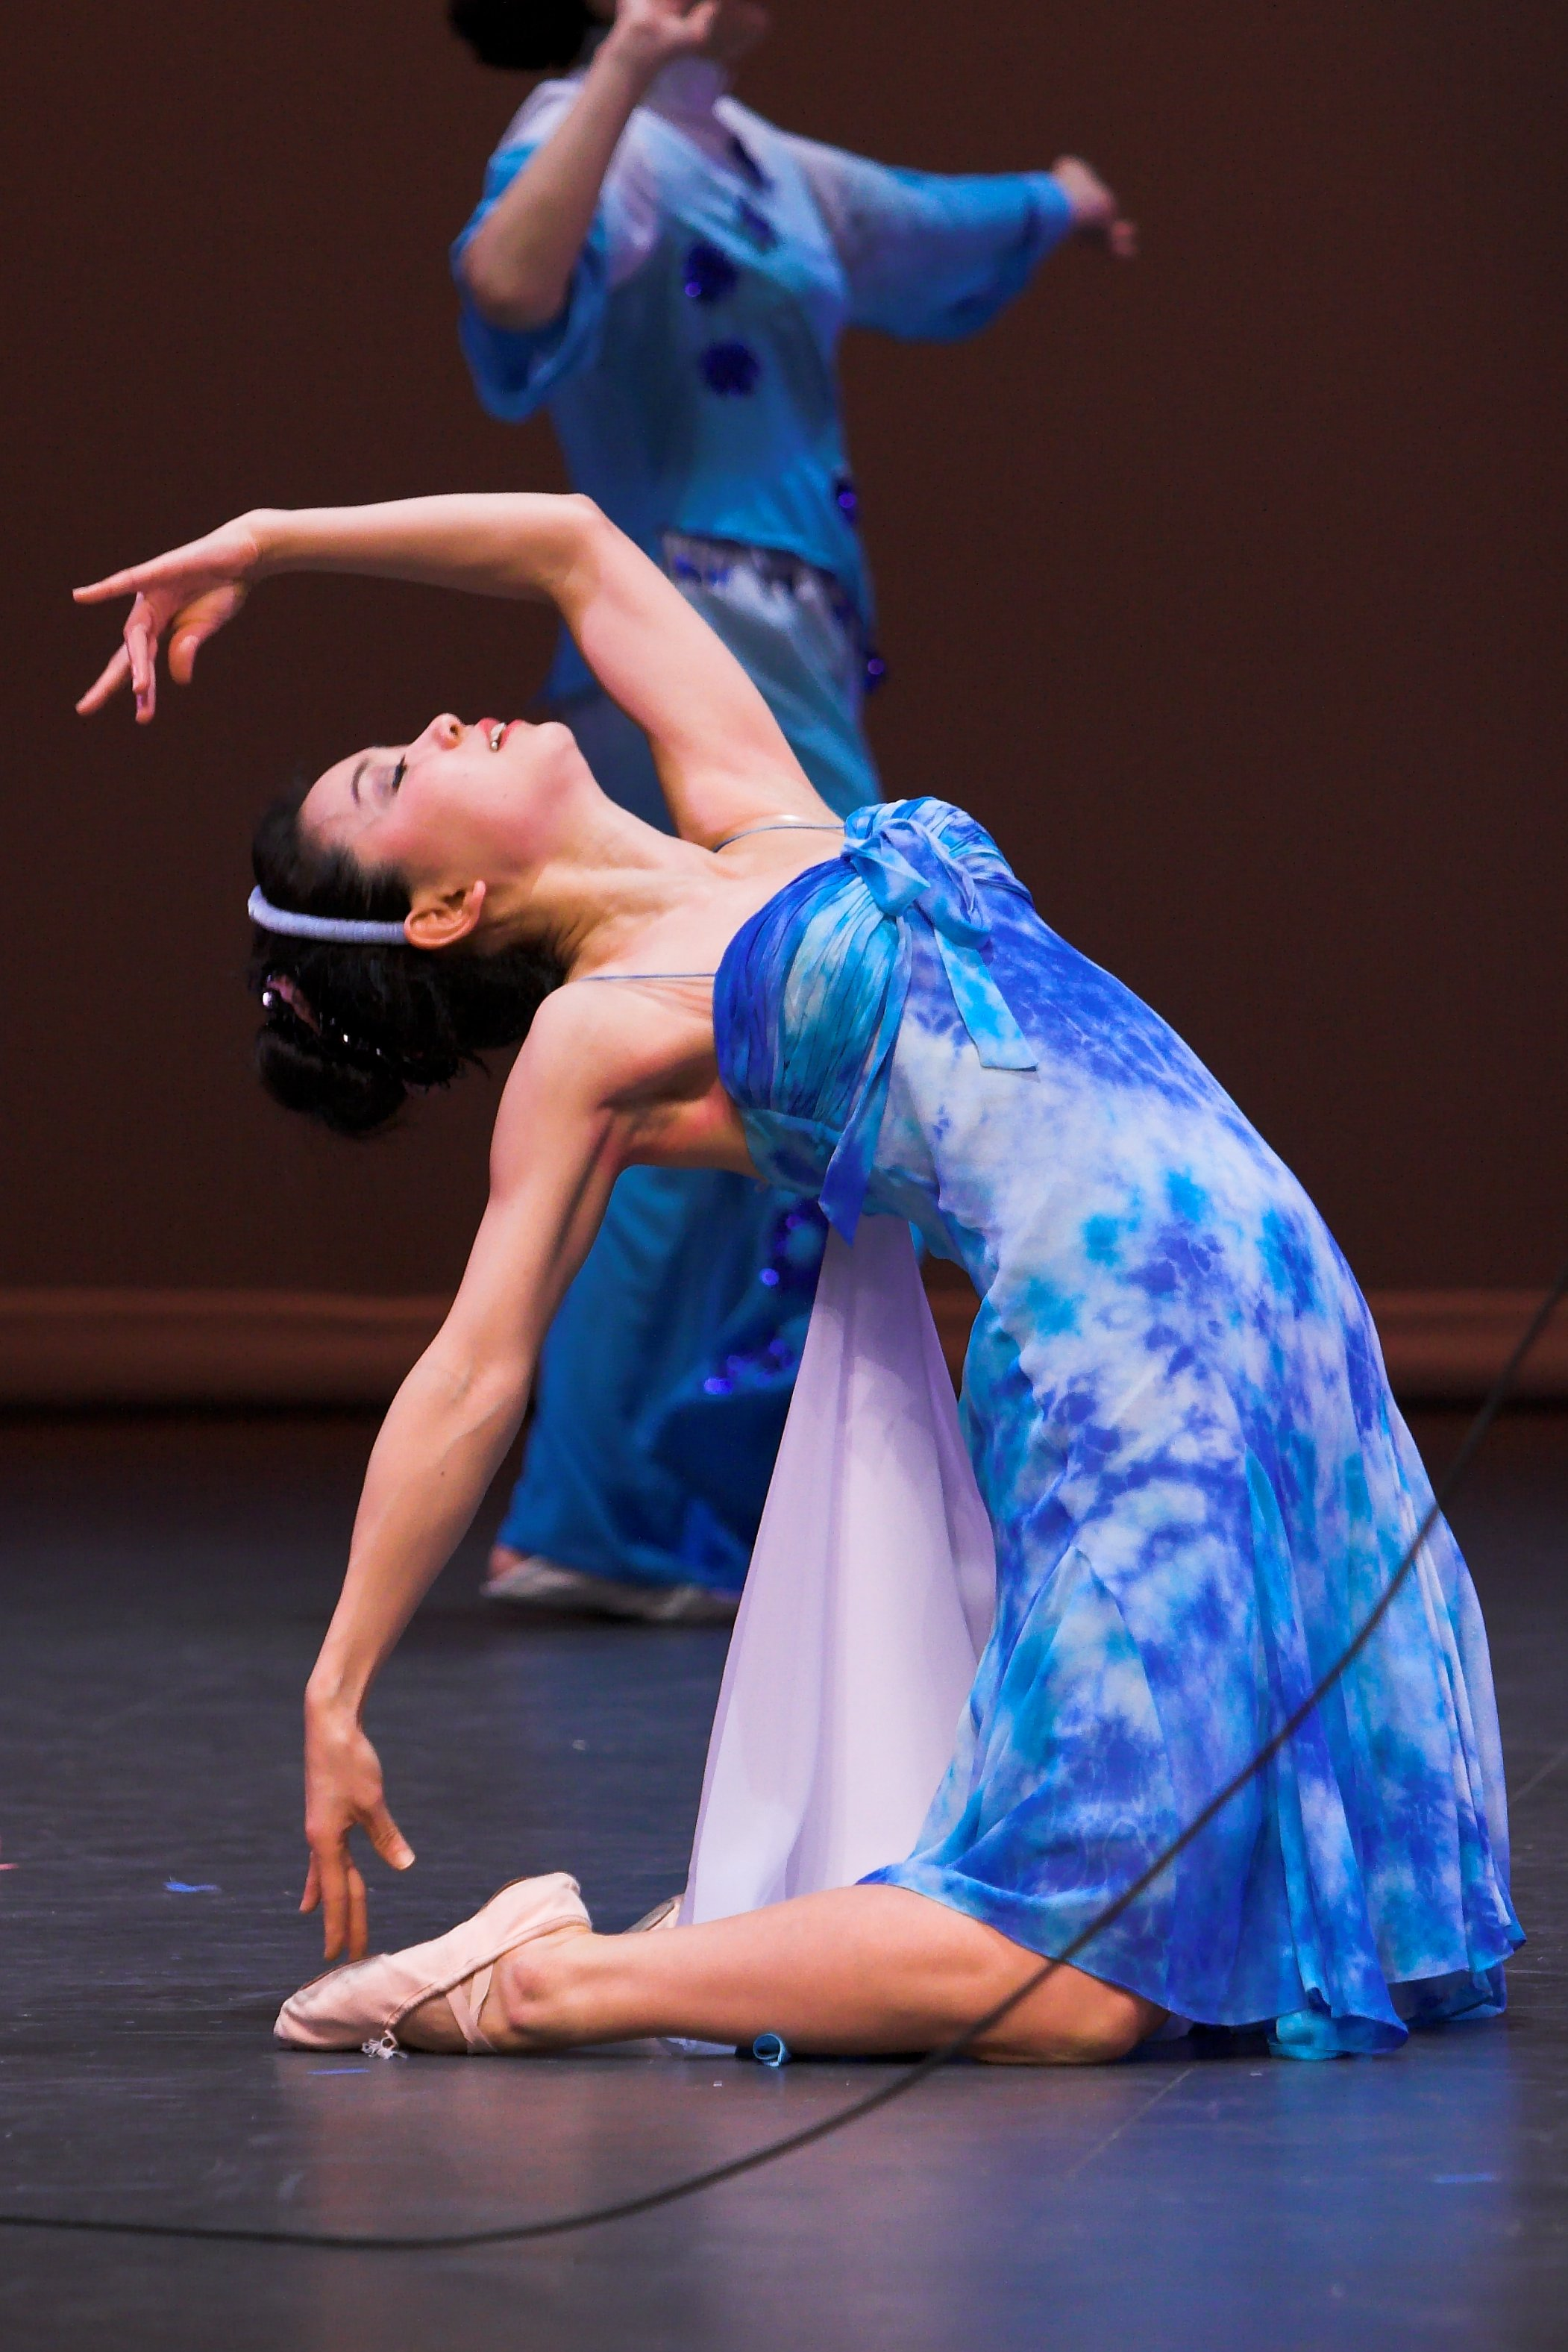 2007 Winter Performing Art Series at Redmond Image 62